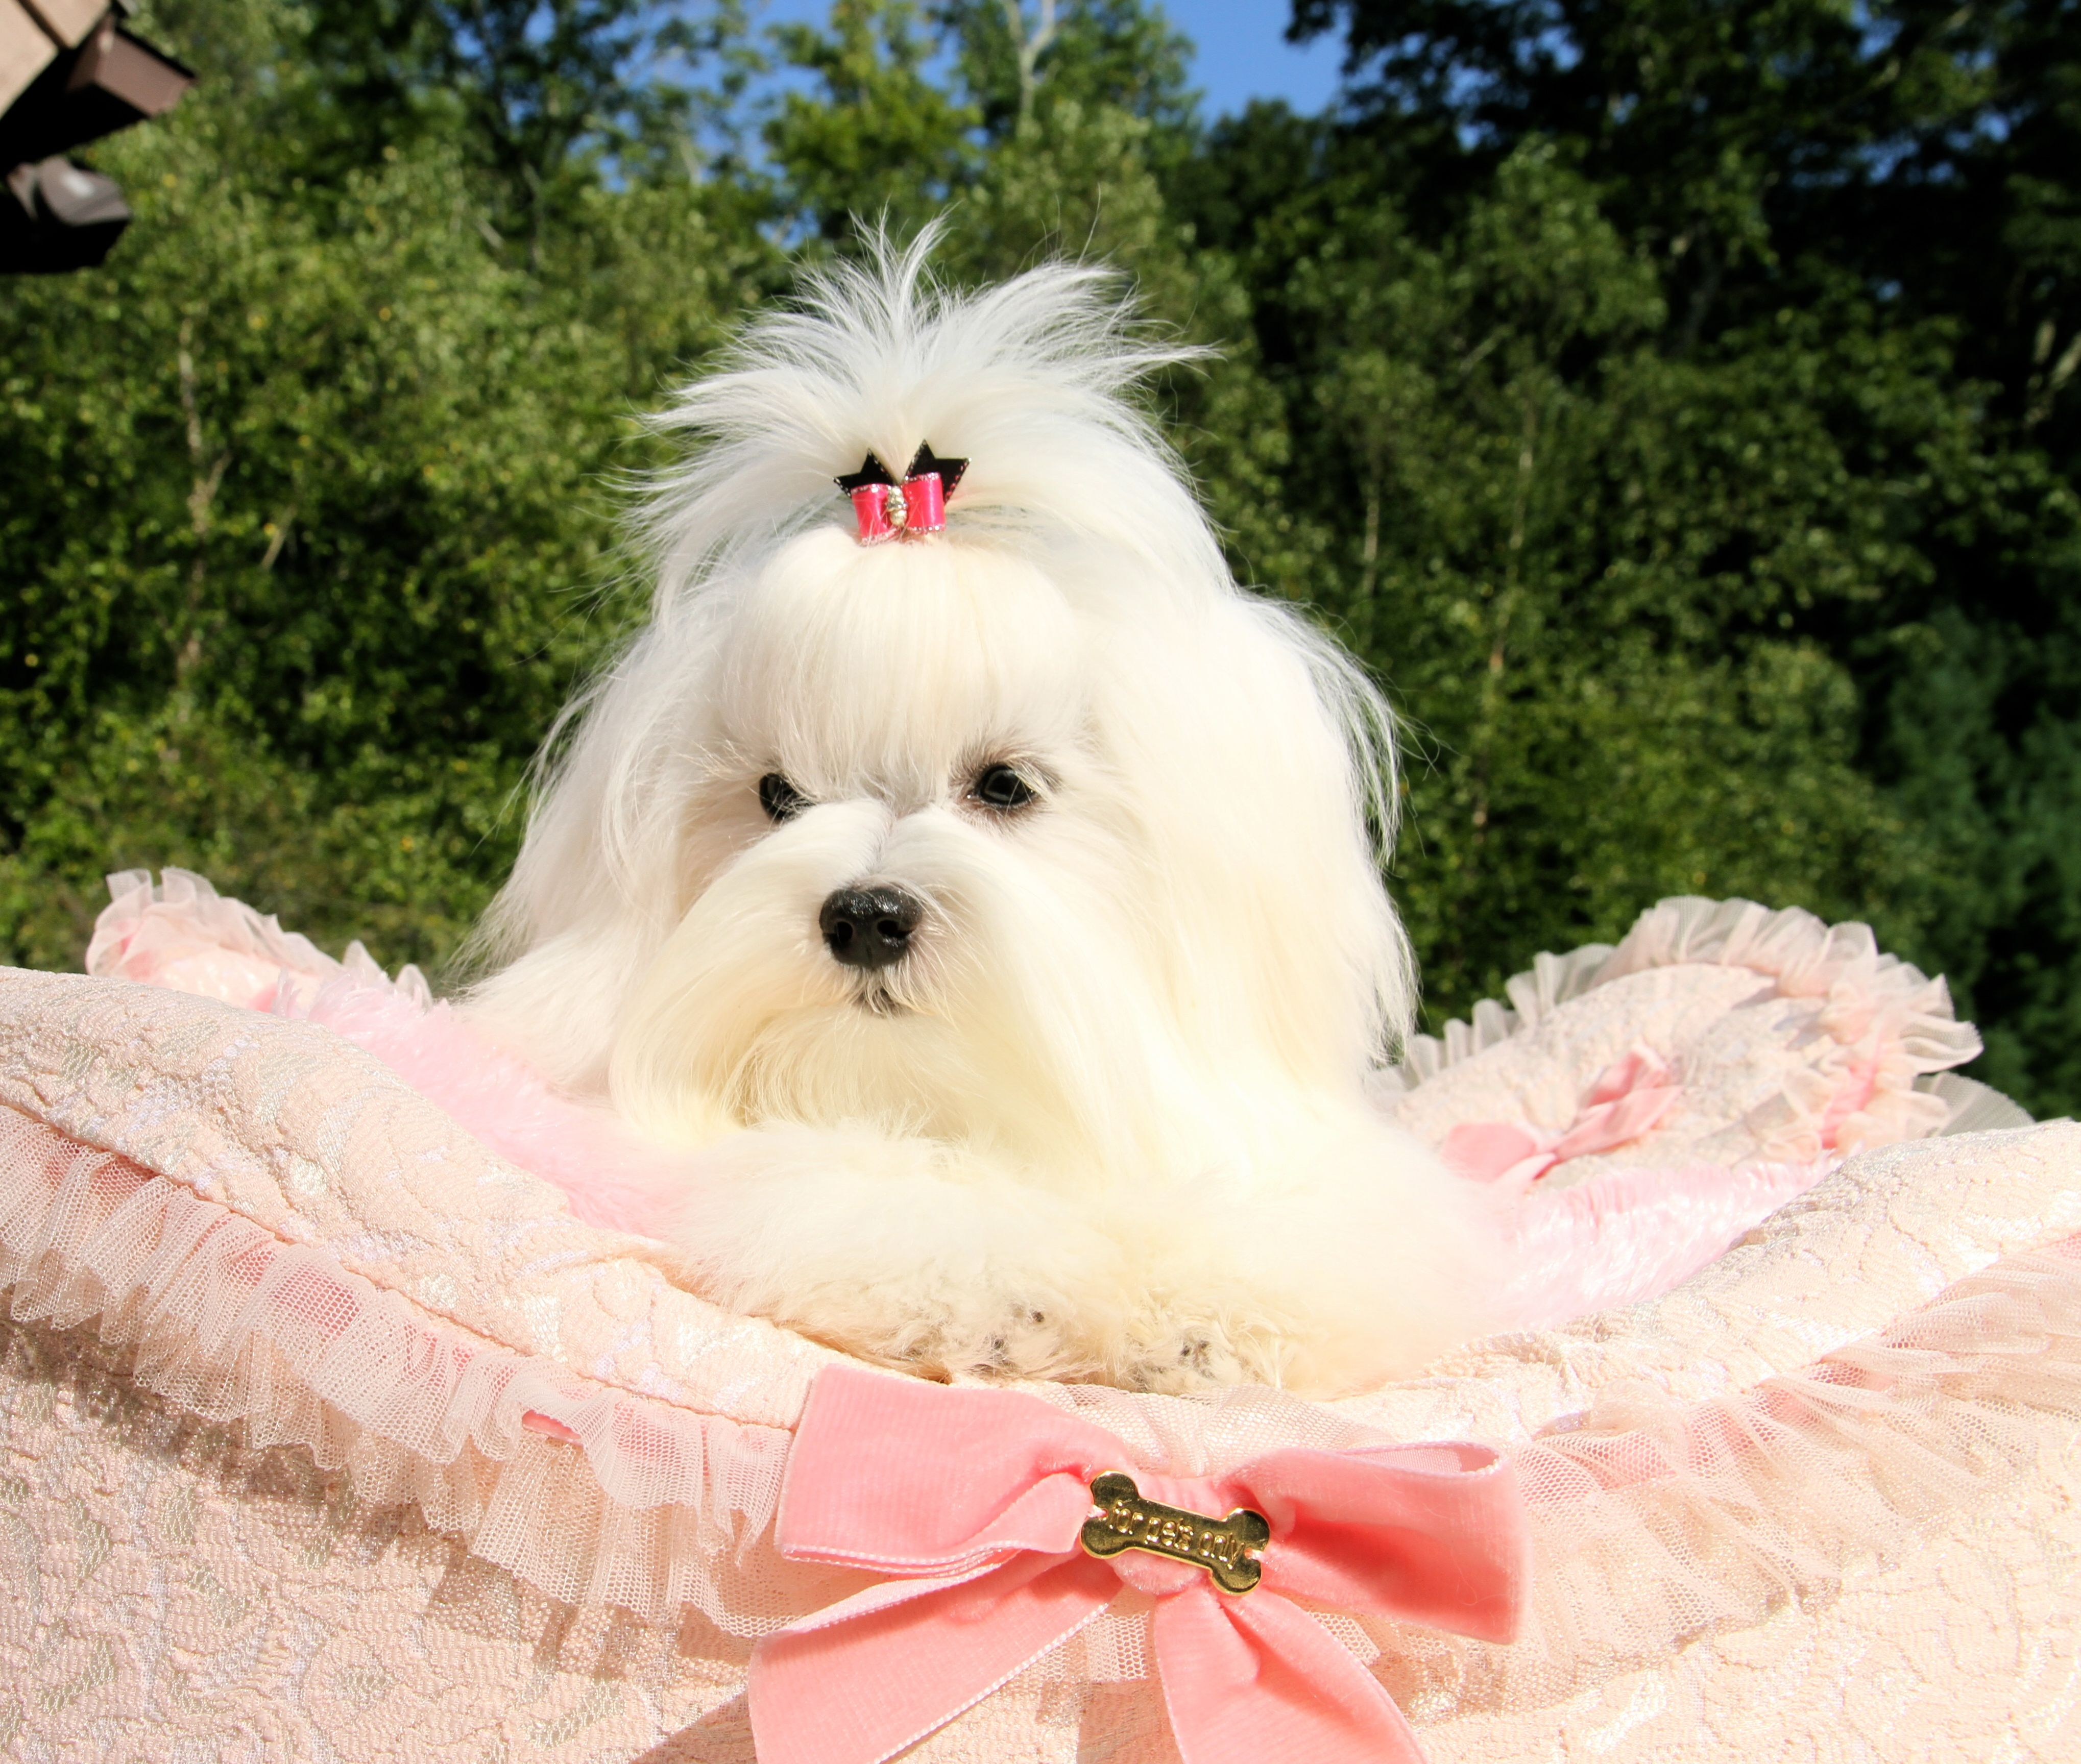 Pin By Melitica Maltese On Melitica Maltese Puppies Cute Dog Pictures Maltese Puppy Cute Dogs Images